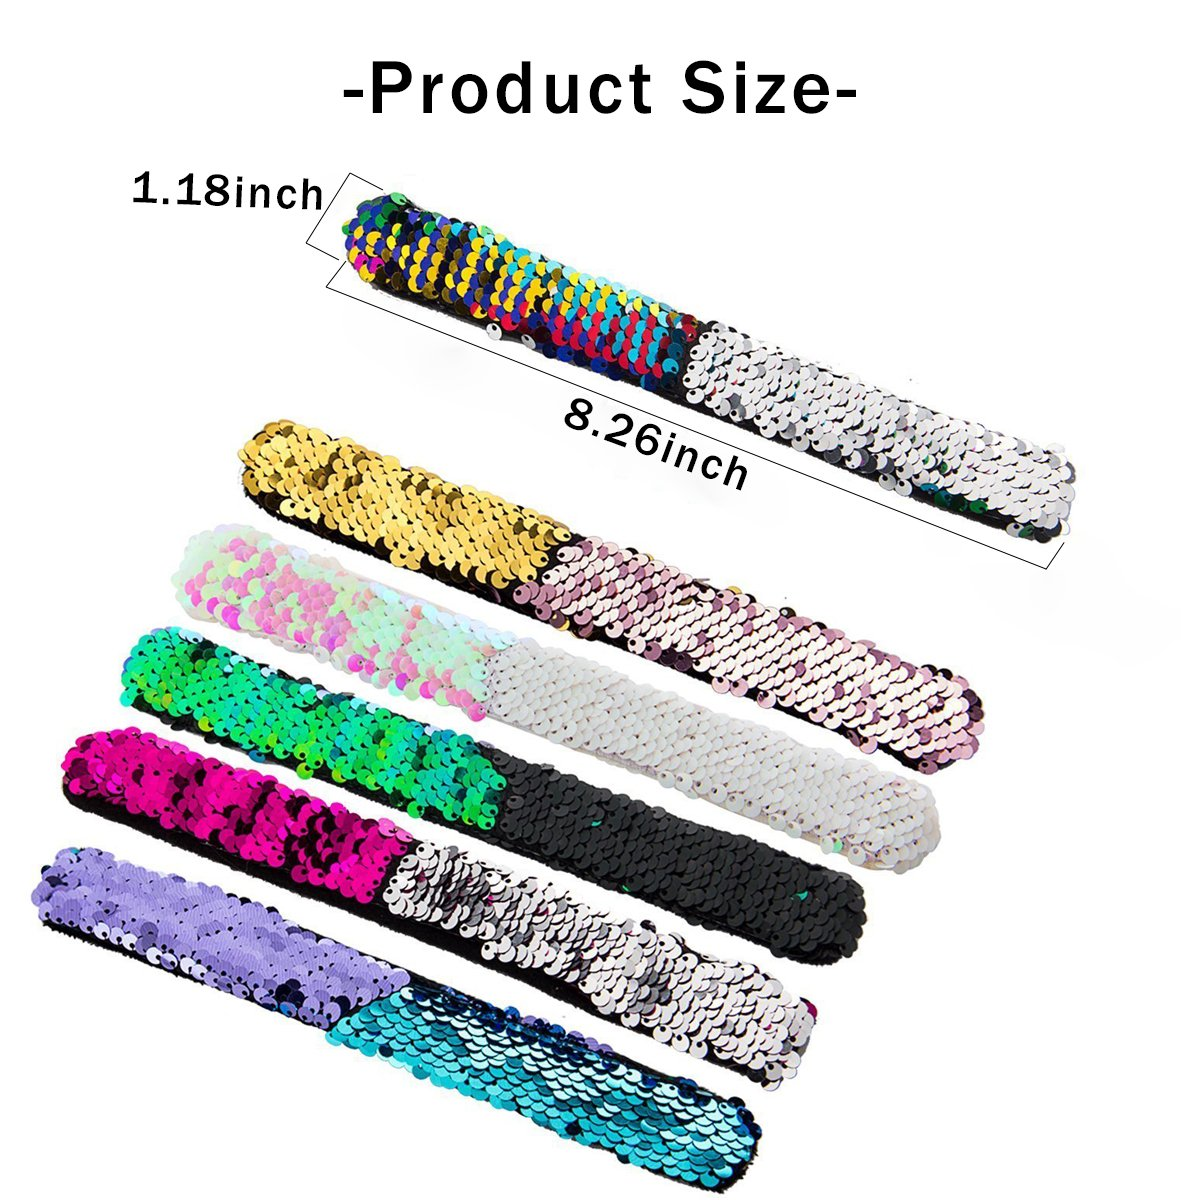 Slap Bracelets Sequin Assorted Reversible Mermaid Wristband for Party Festival (6 Packs)